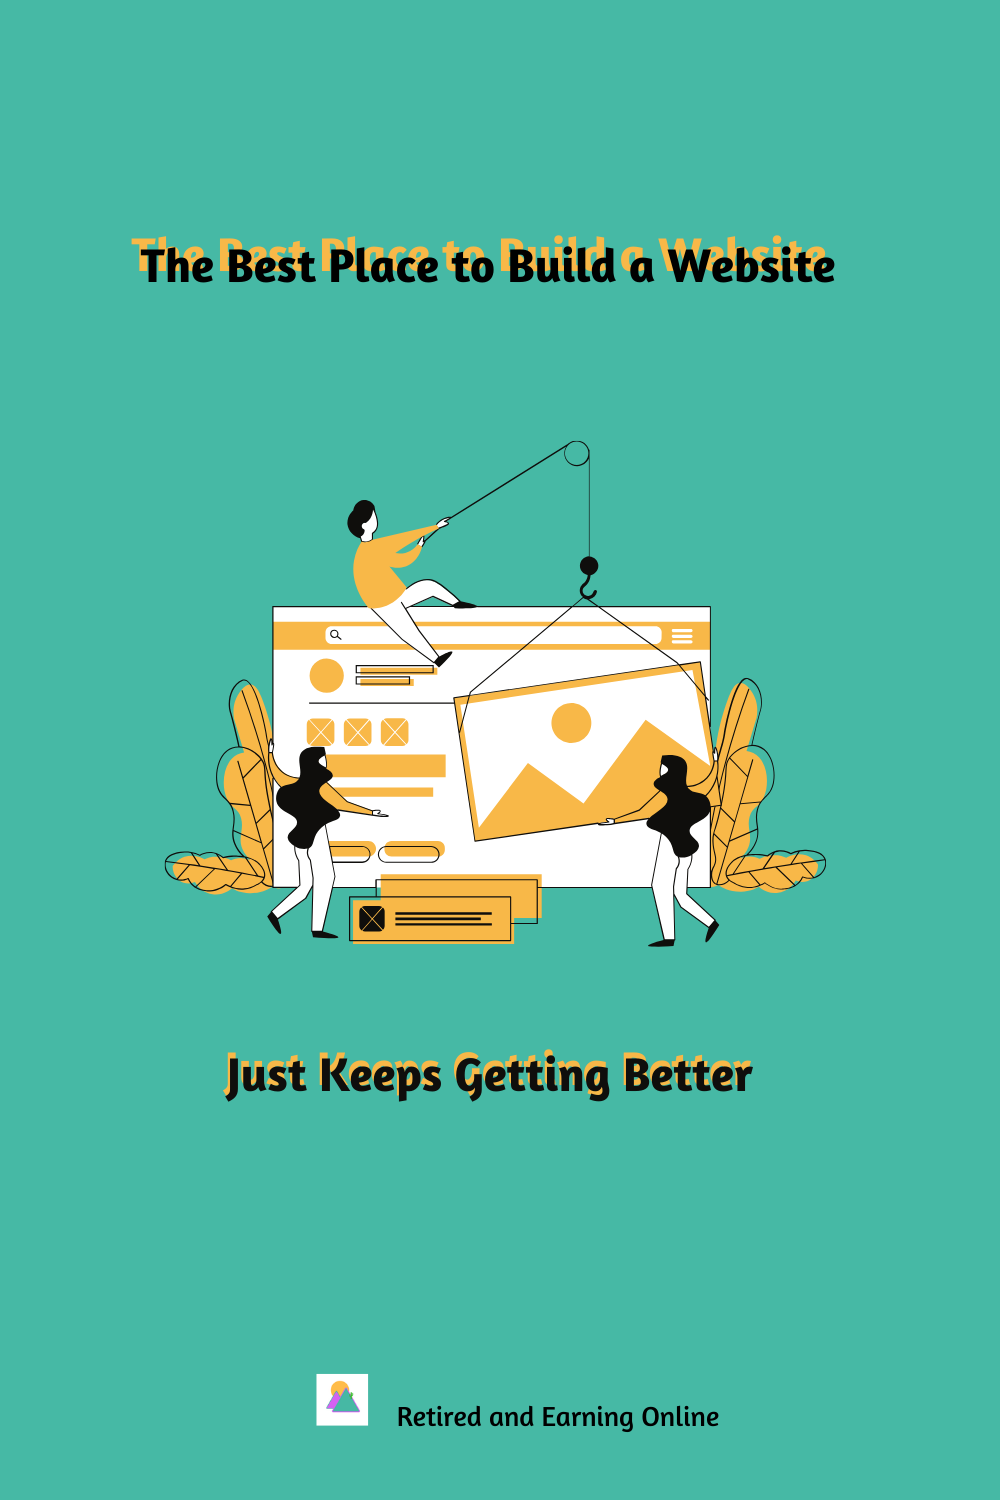 Pinterest Graphic- The Best Place to Build a Website